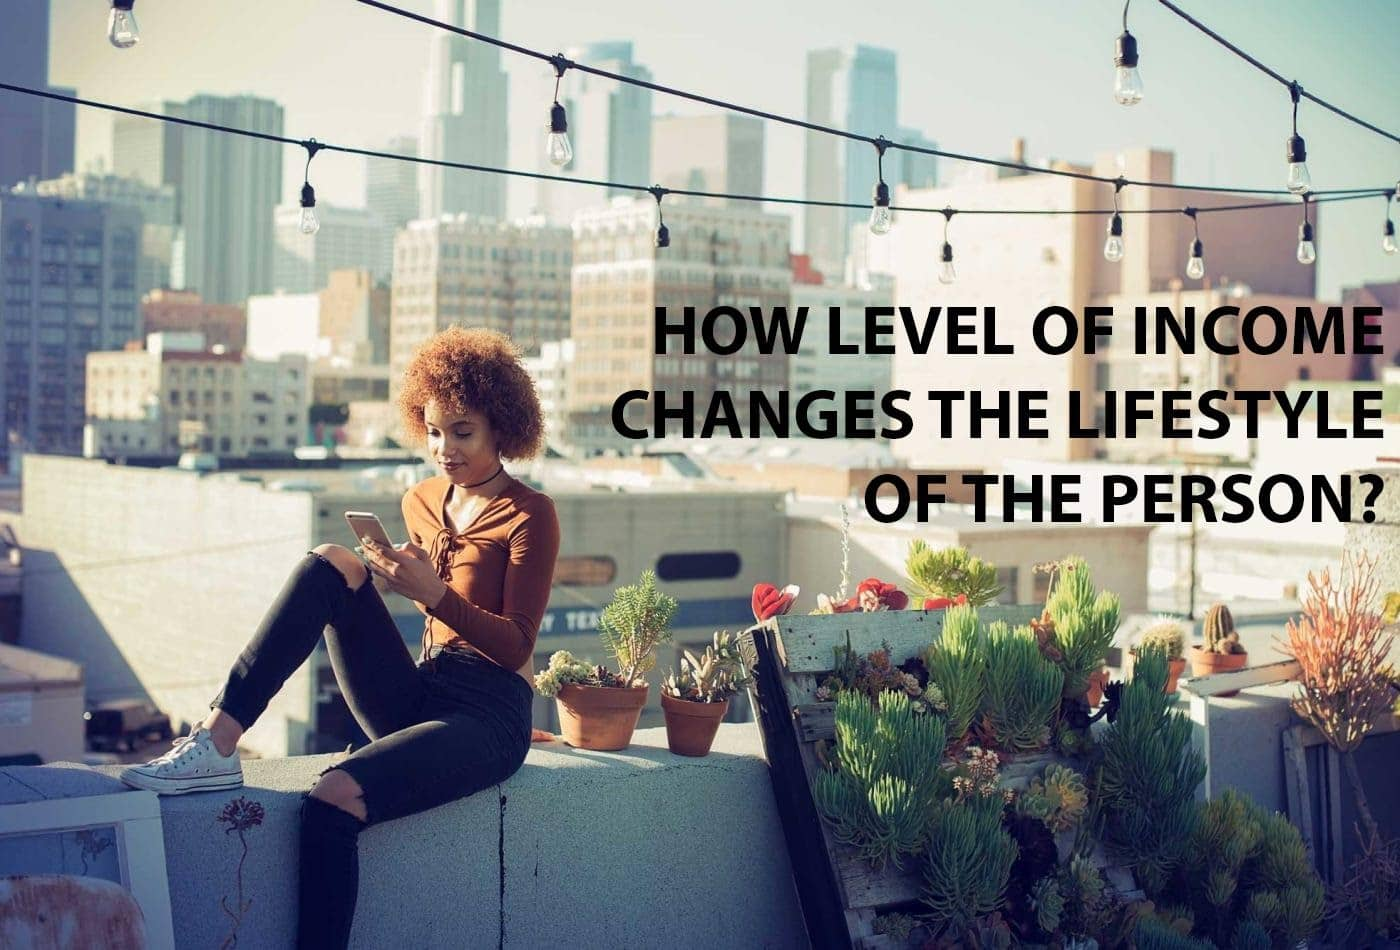 HOW LEVEL OF INCOME CHANGES THE LIFESTYLE OF THE PERSON